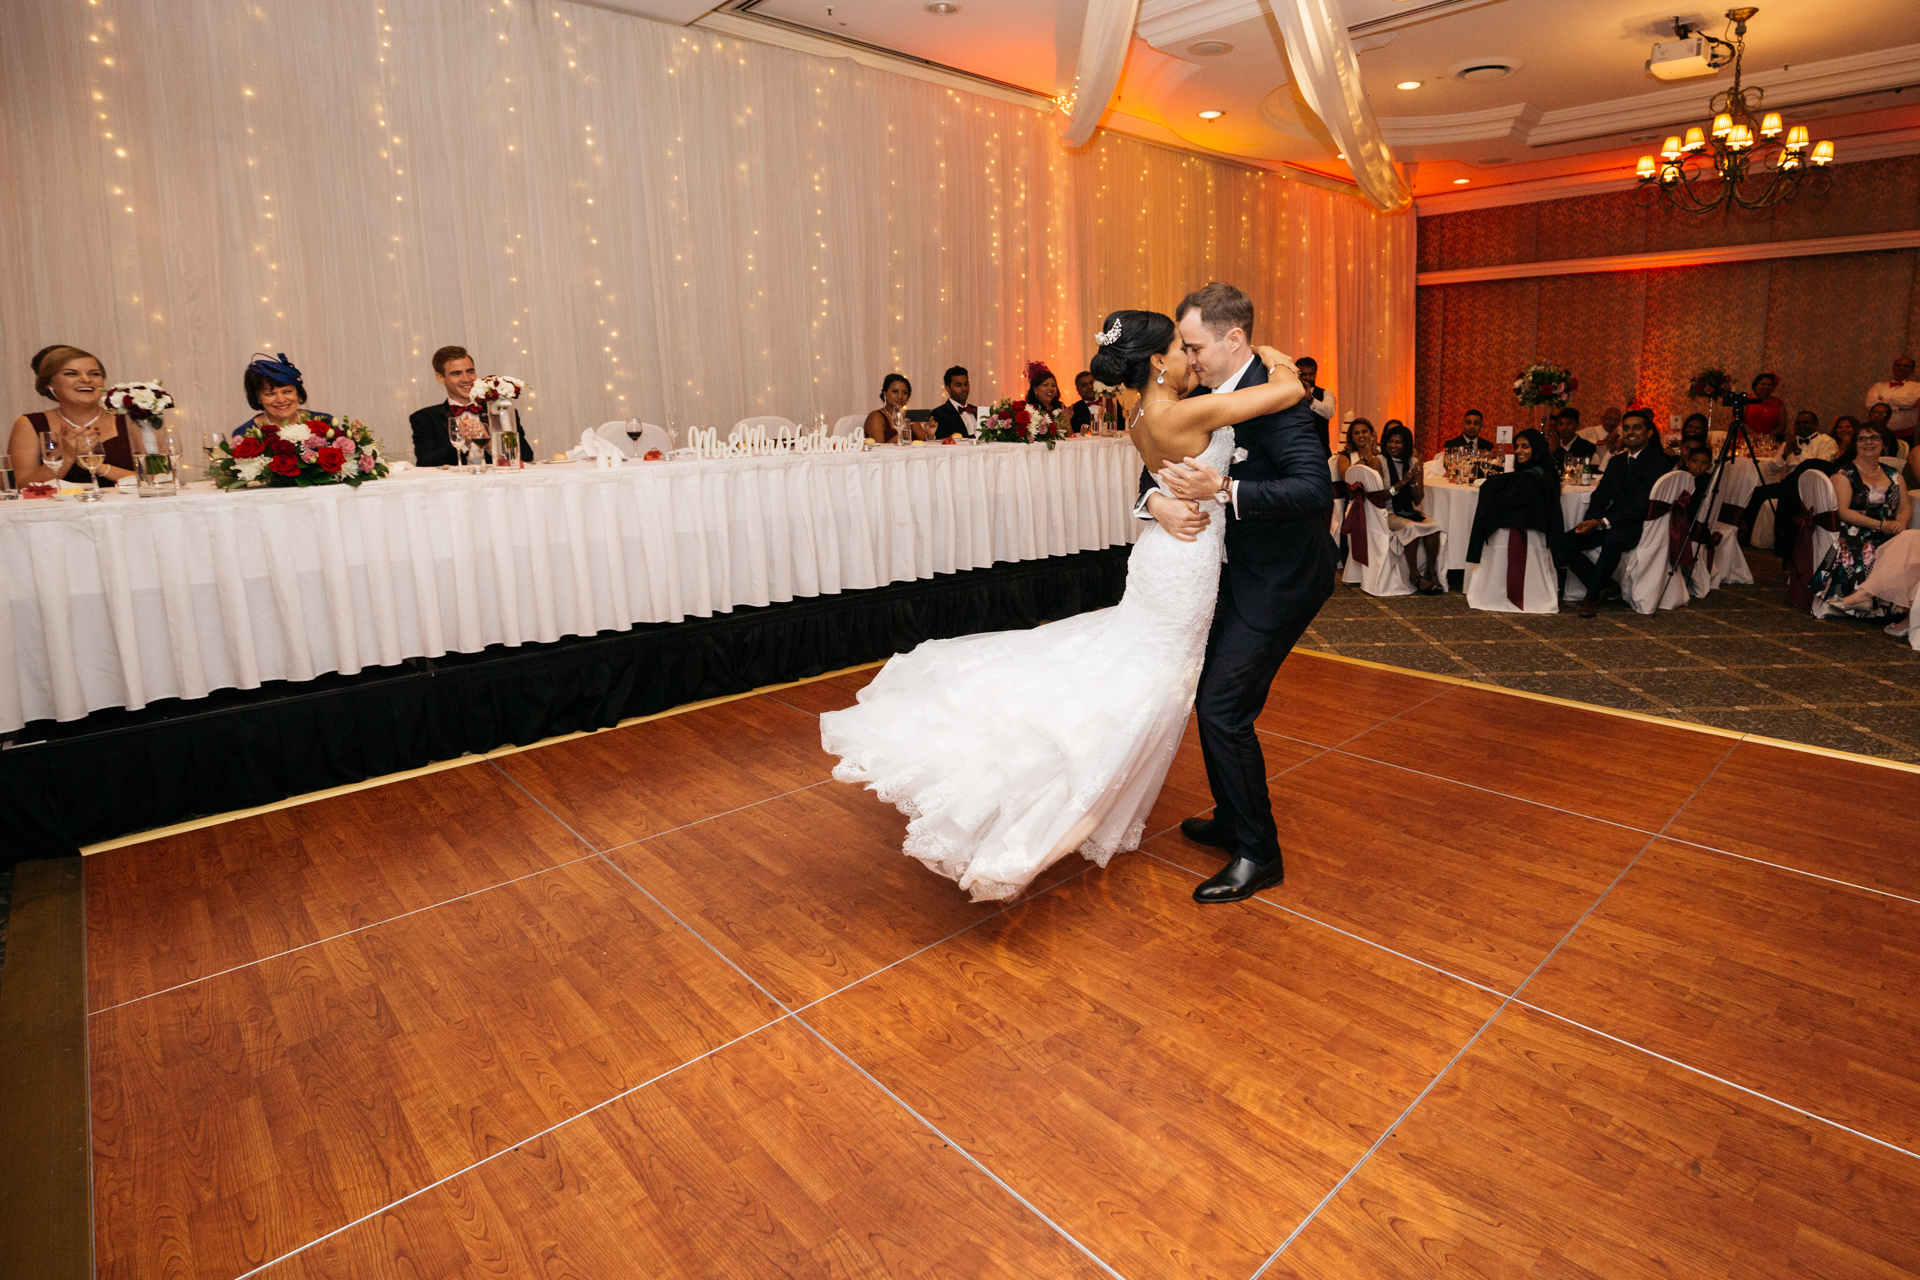 Stamford Wedding Reception Image of first dance